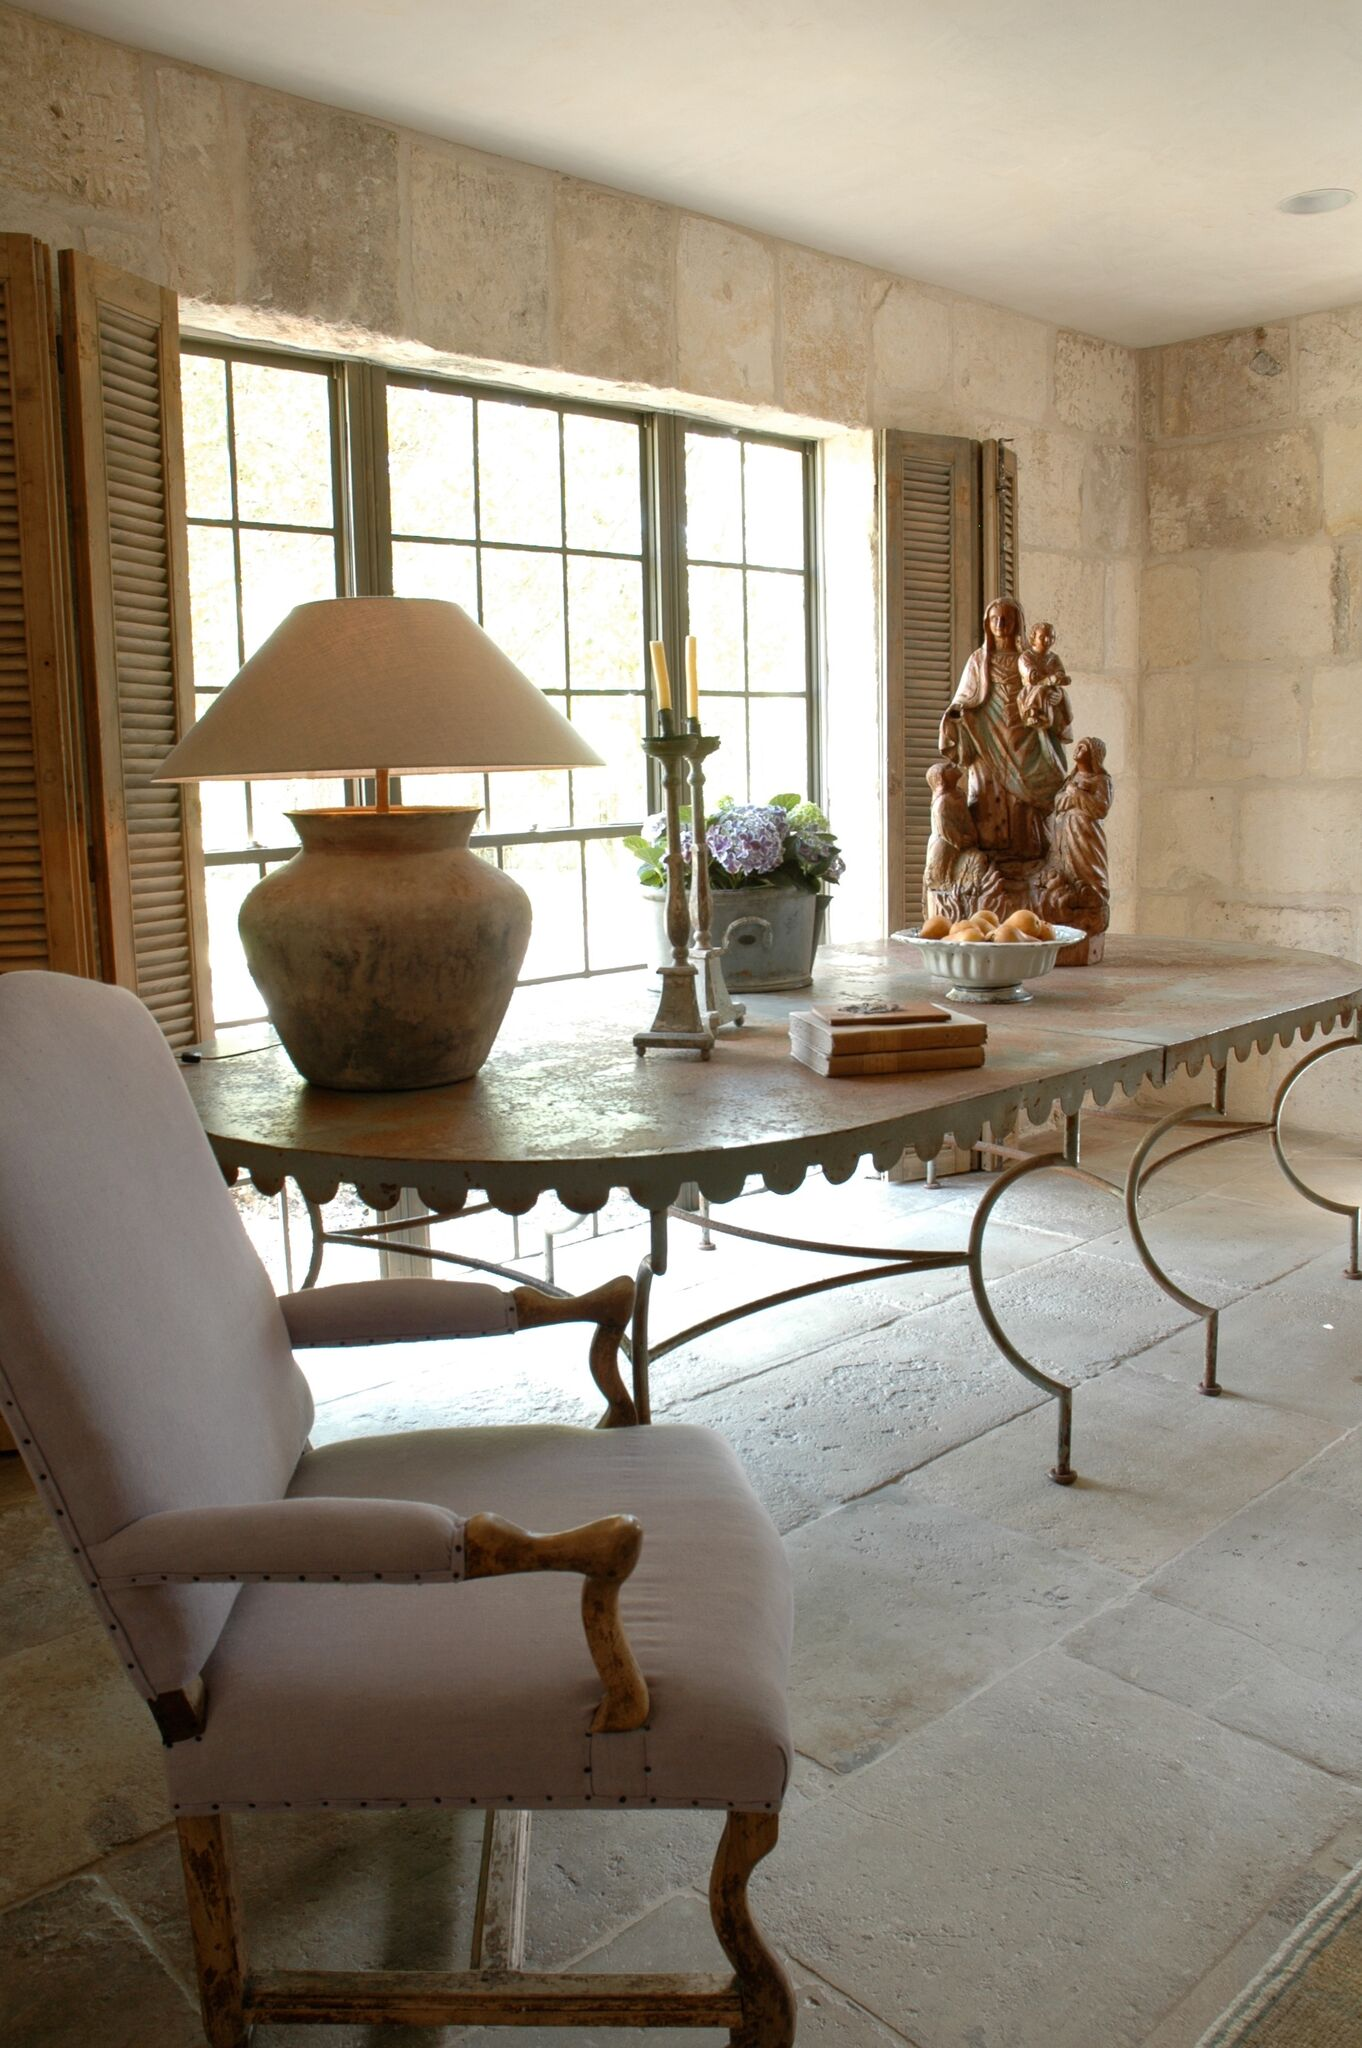 A sophisticated European country designed interior (Chateau Domingue and Pamela Pierce) is a breathlessly beautiful example of how to master elegant rustic refined European Country style. #frenchcountry #interiordesign #europeanantiques #oldworldstyle #rusticdecor #Frenchhome #housetour